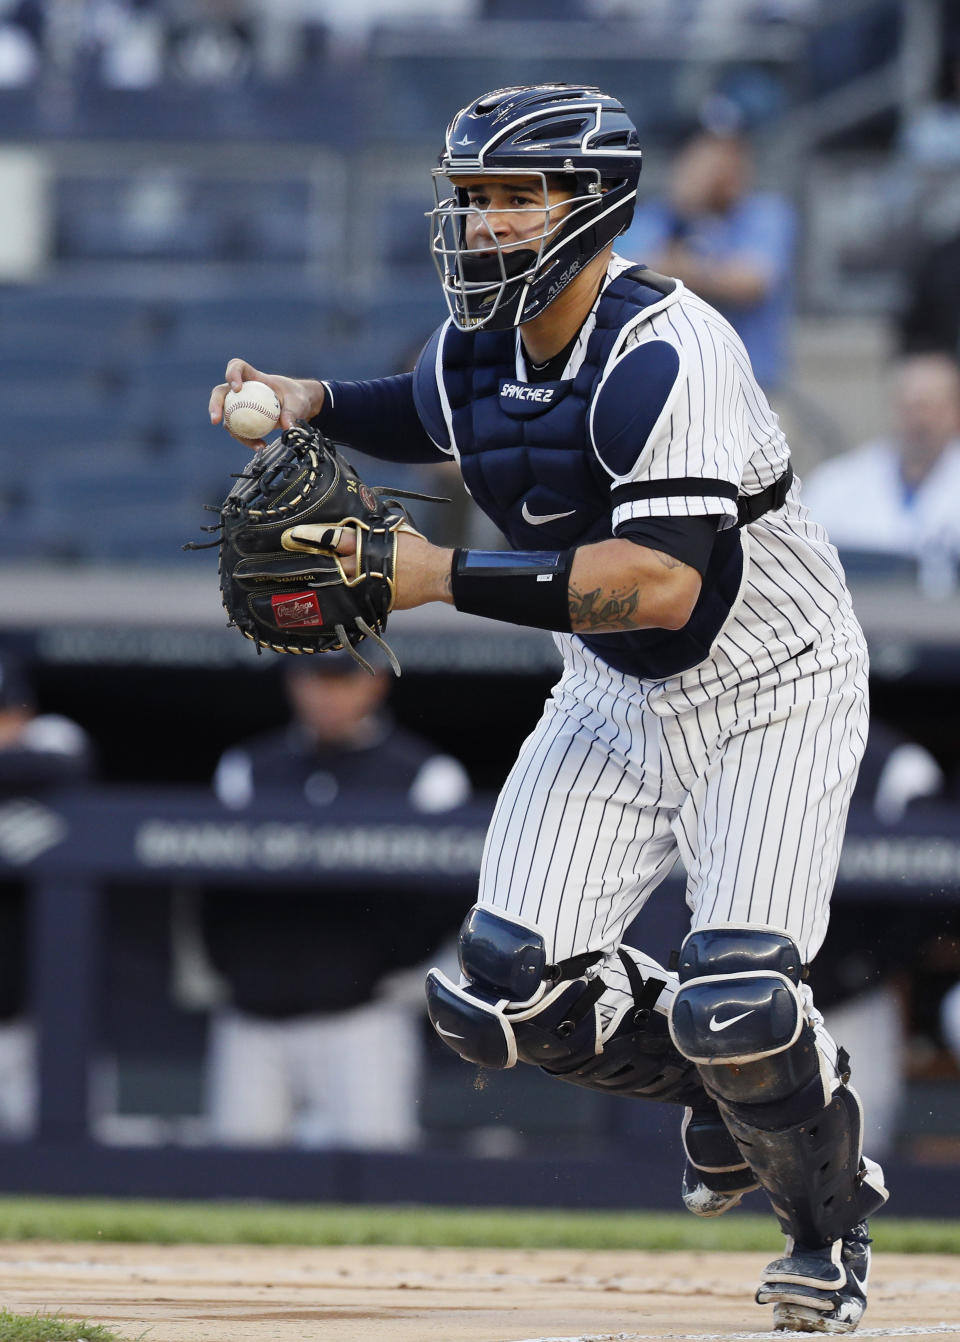 NEW YORK, NY - MAY 7:  Catcher Gary Sanchez #24 of the New York Yankees runs the ball towards third base during a rundown as Domingo Santana was caught between 3rd base and home before being tagged out in the second inning of an MLB baseball game against the Seattle Mariners on May 7, 2019 at Yankee Stadium in the Bronx borough of New York City. Yankees won 5-4. (Photo by Paul Bereswill/Getty Images)